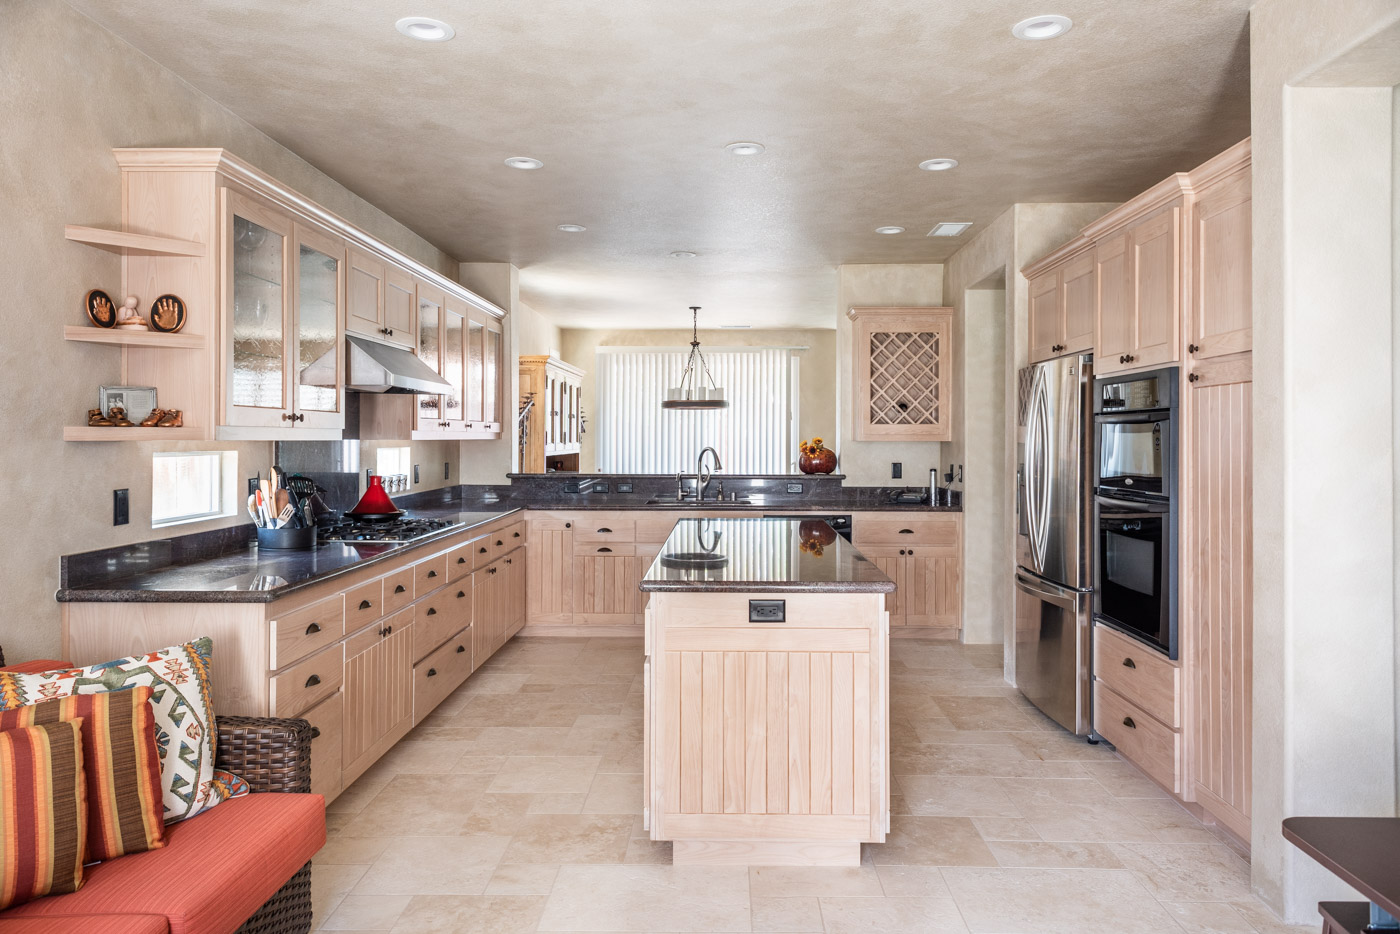 A u-shaped kitchen layout with small island and custom white-washed wood cabinets